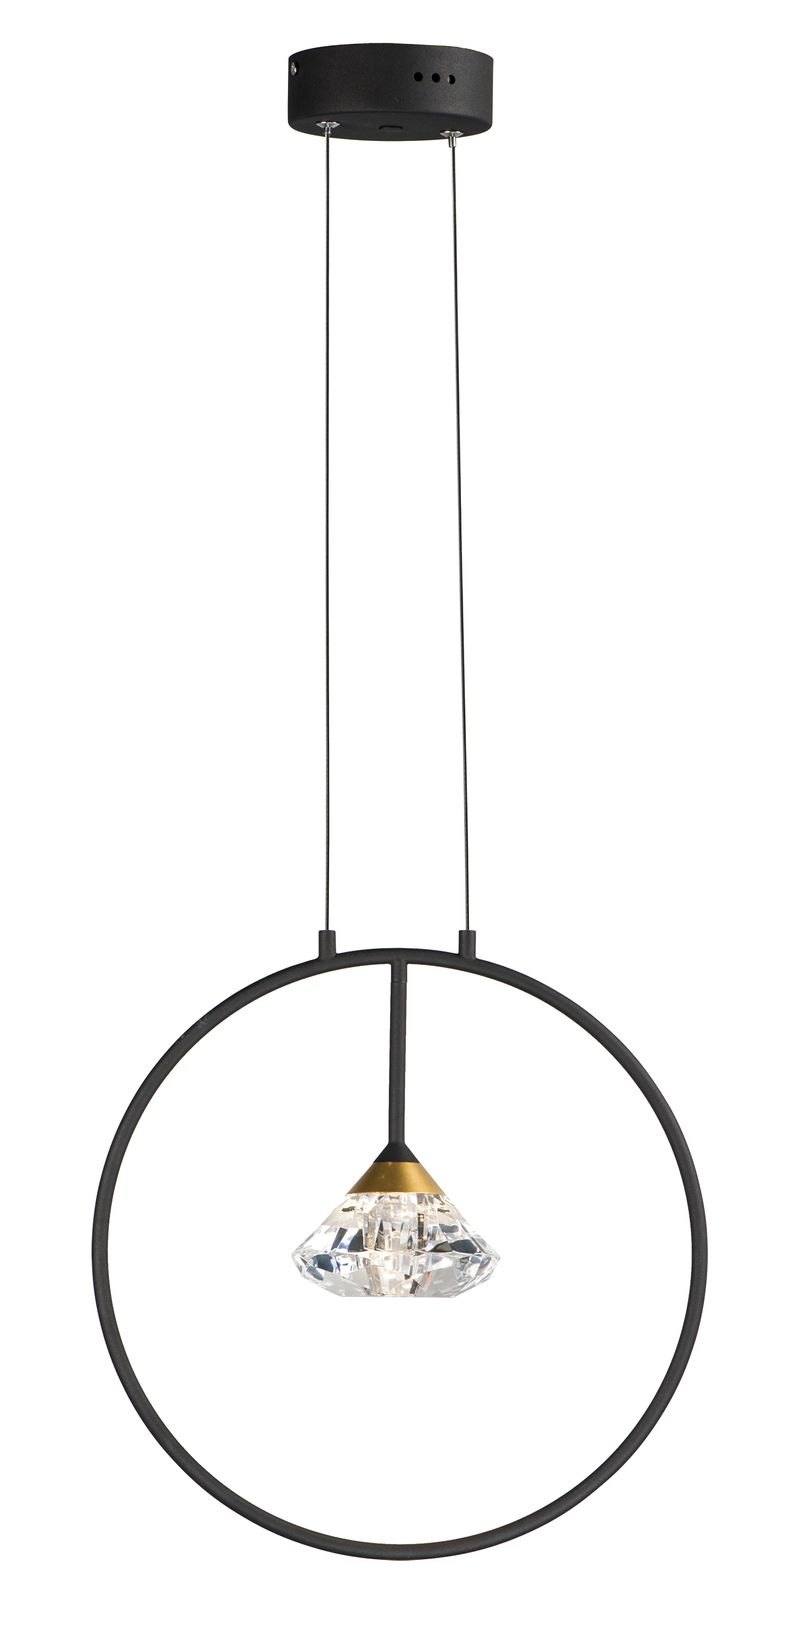 "Hope 4.75"" 1-Light Single Pendant - Black / Metallic Gold"